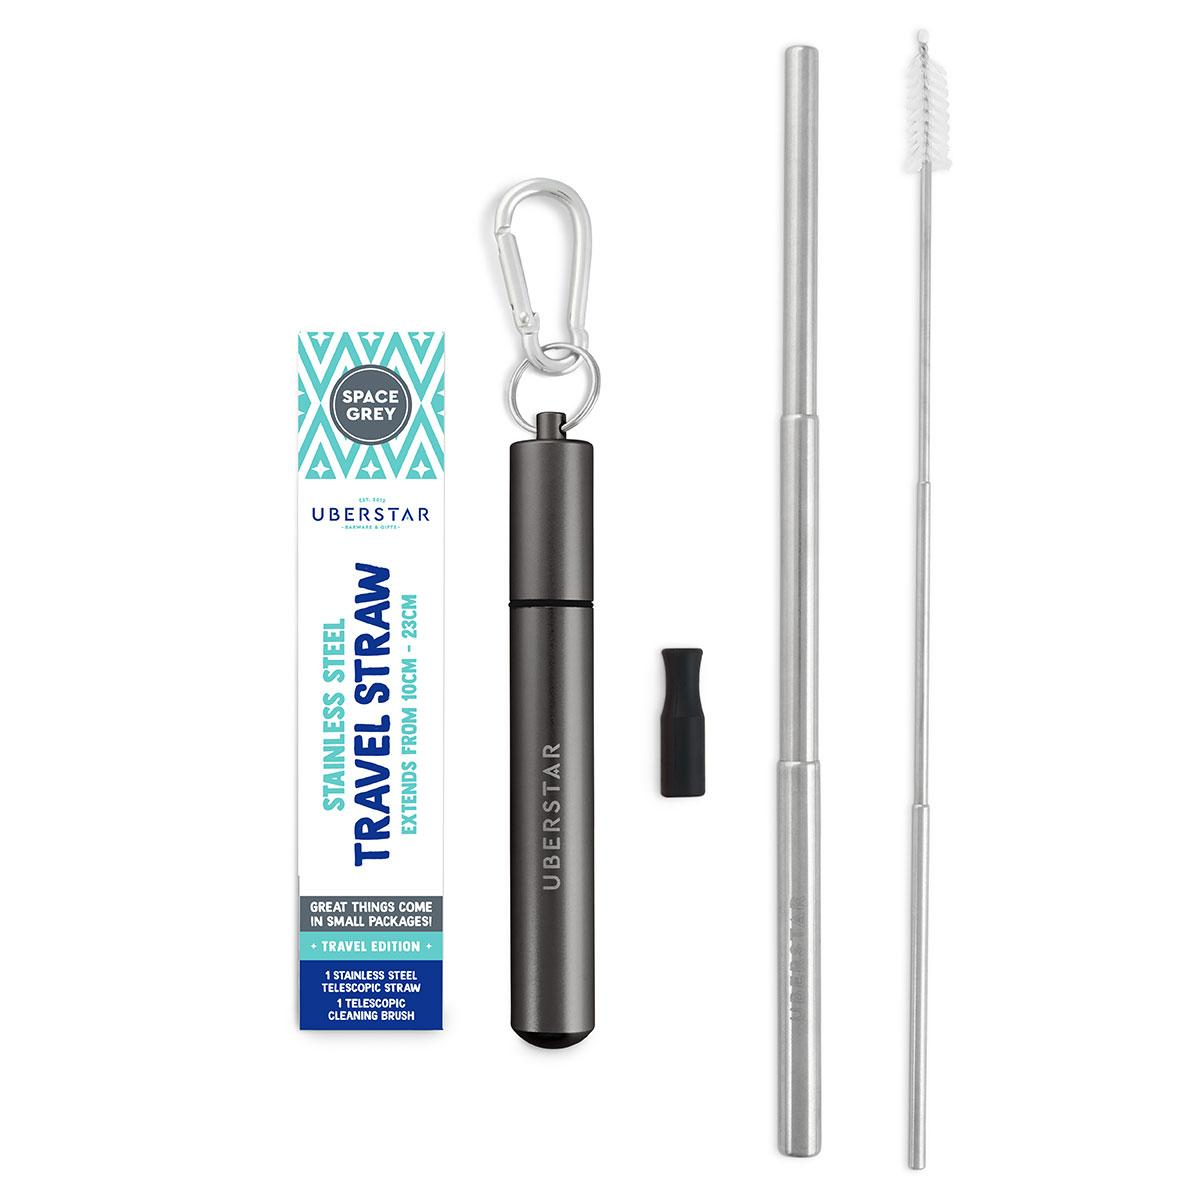 Uberstar Collapsible Travel Stainless Steel Straw - Grey